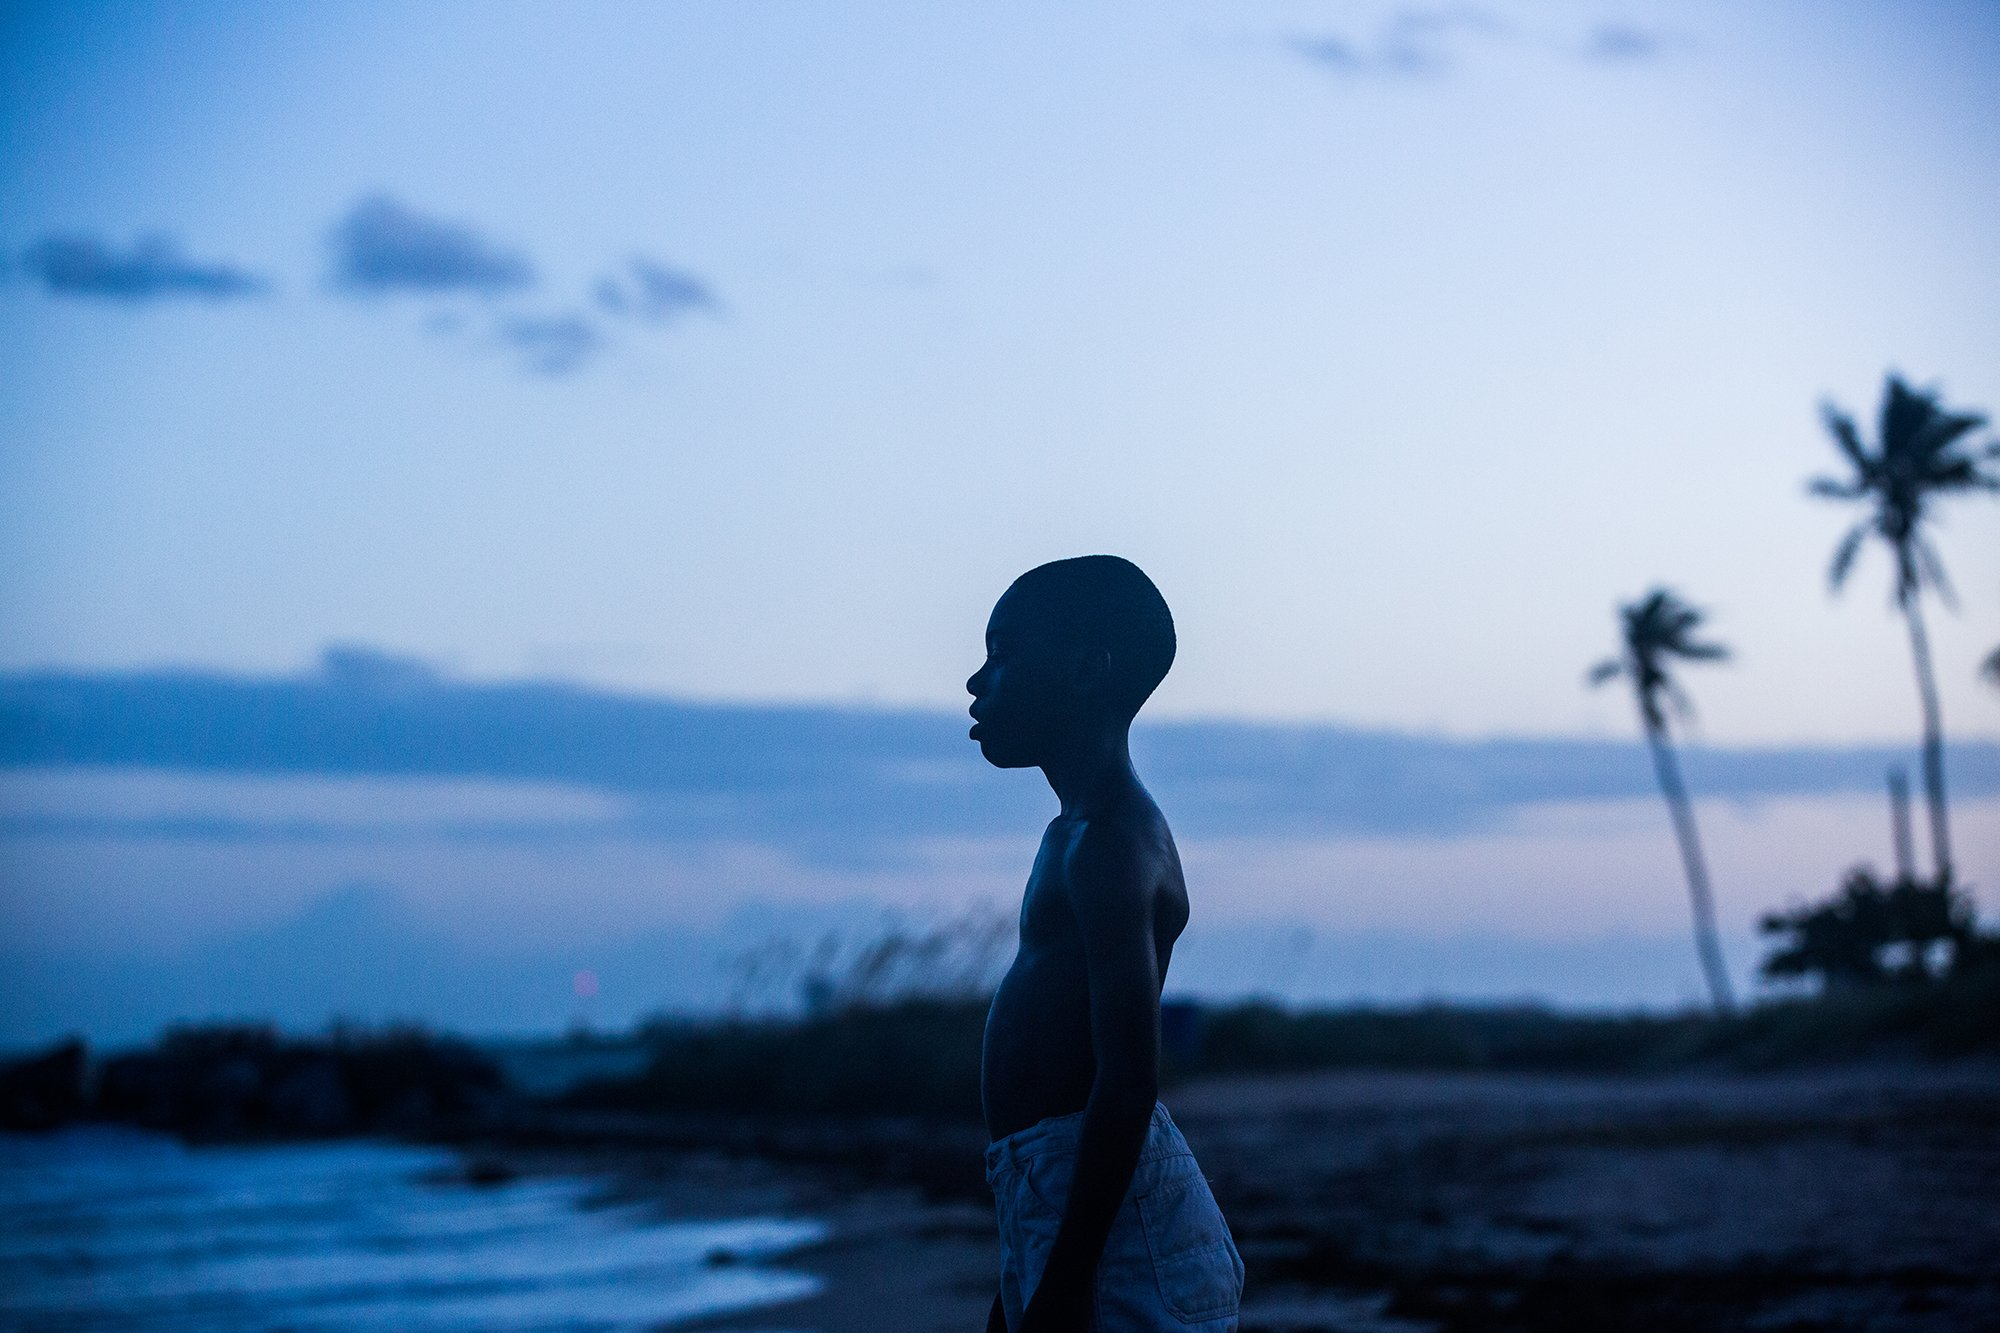 'Moonlight' conjuga su poder narrativo con su inmensa fuerza visual.